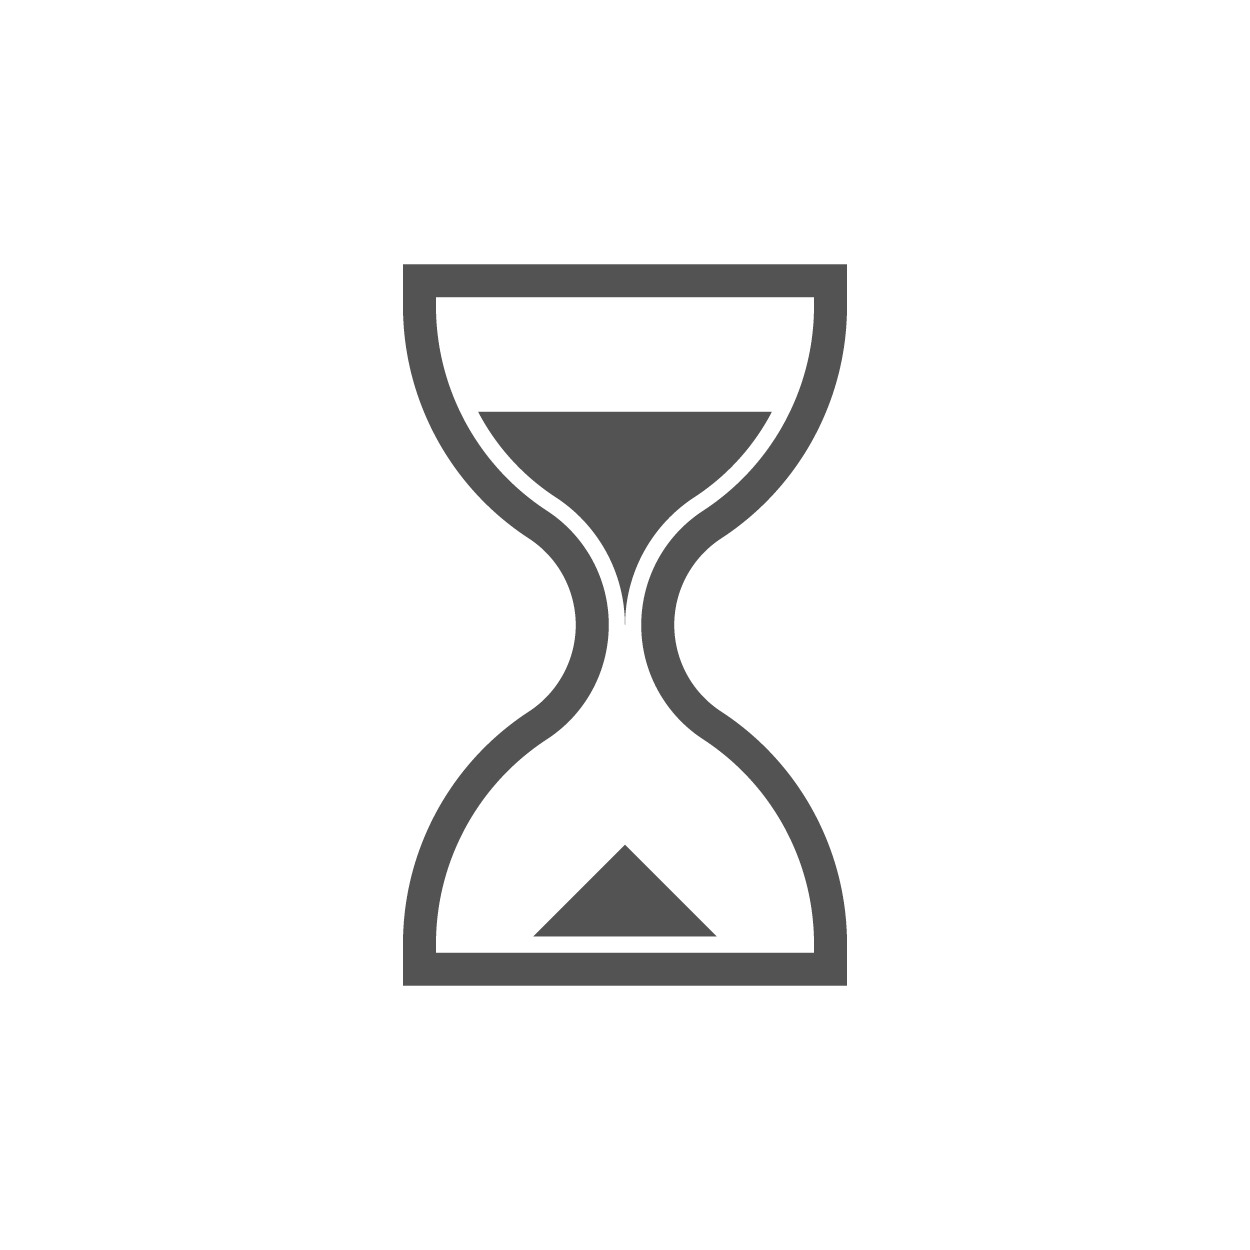 Time by Pham Duy Phuong Hung from the Noun Project